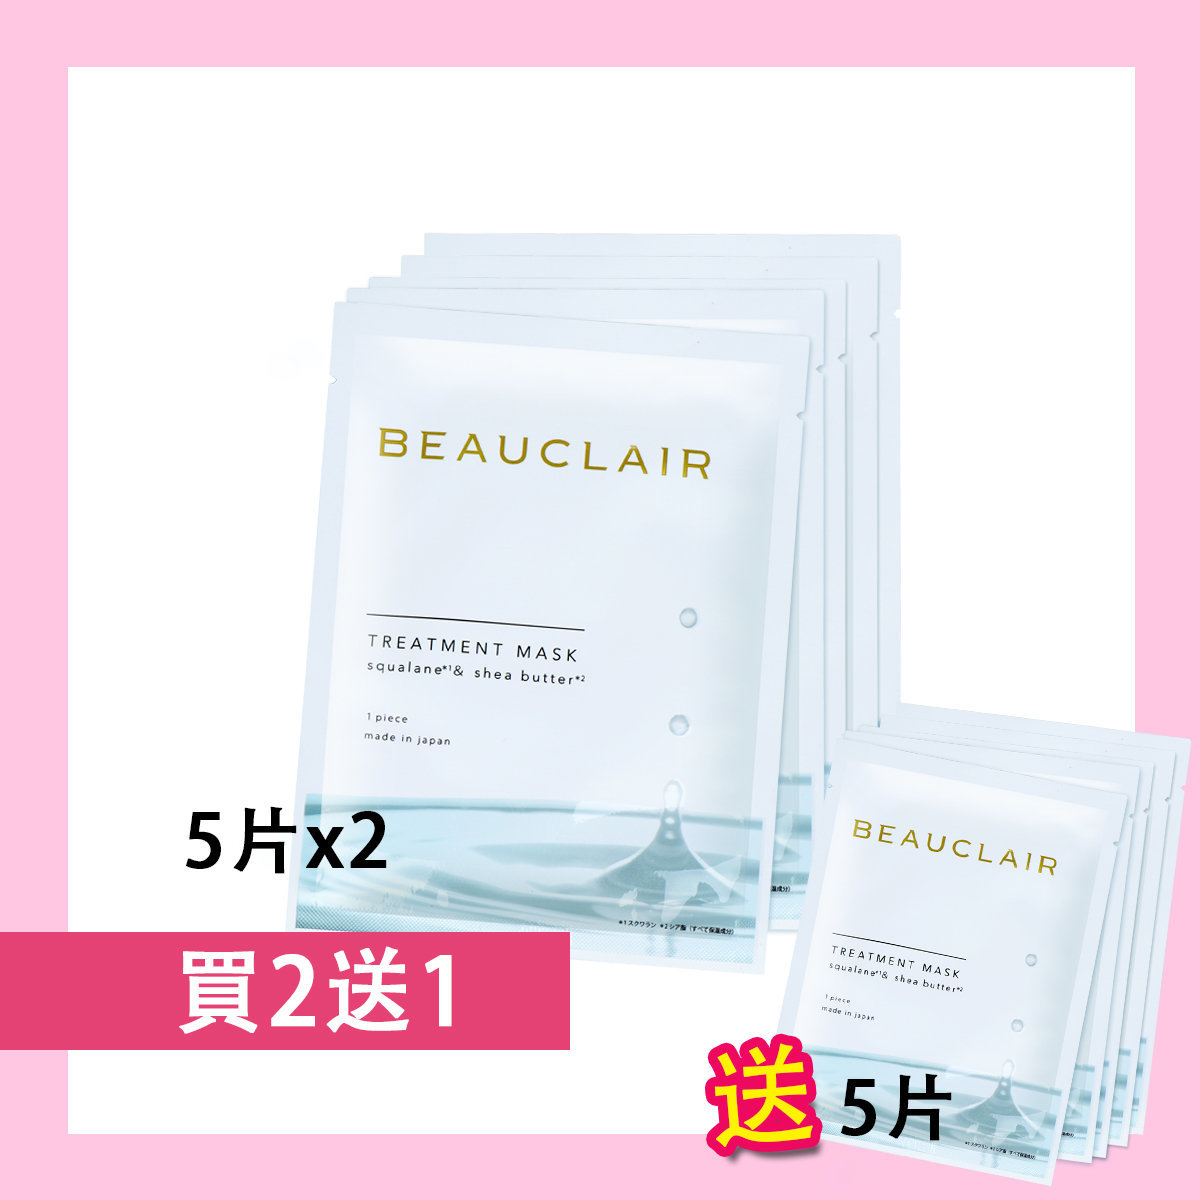 Treatment Mask(5pcs) - Buy 2 Get 1 FREE【Parallel Imports】